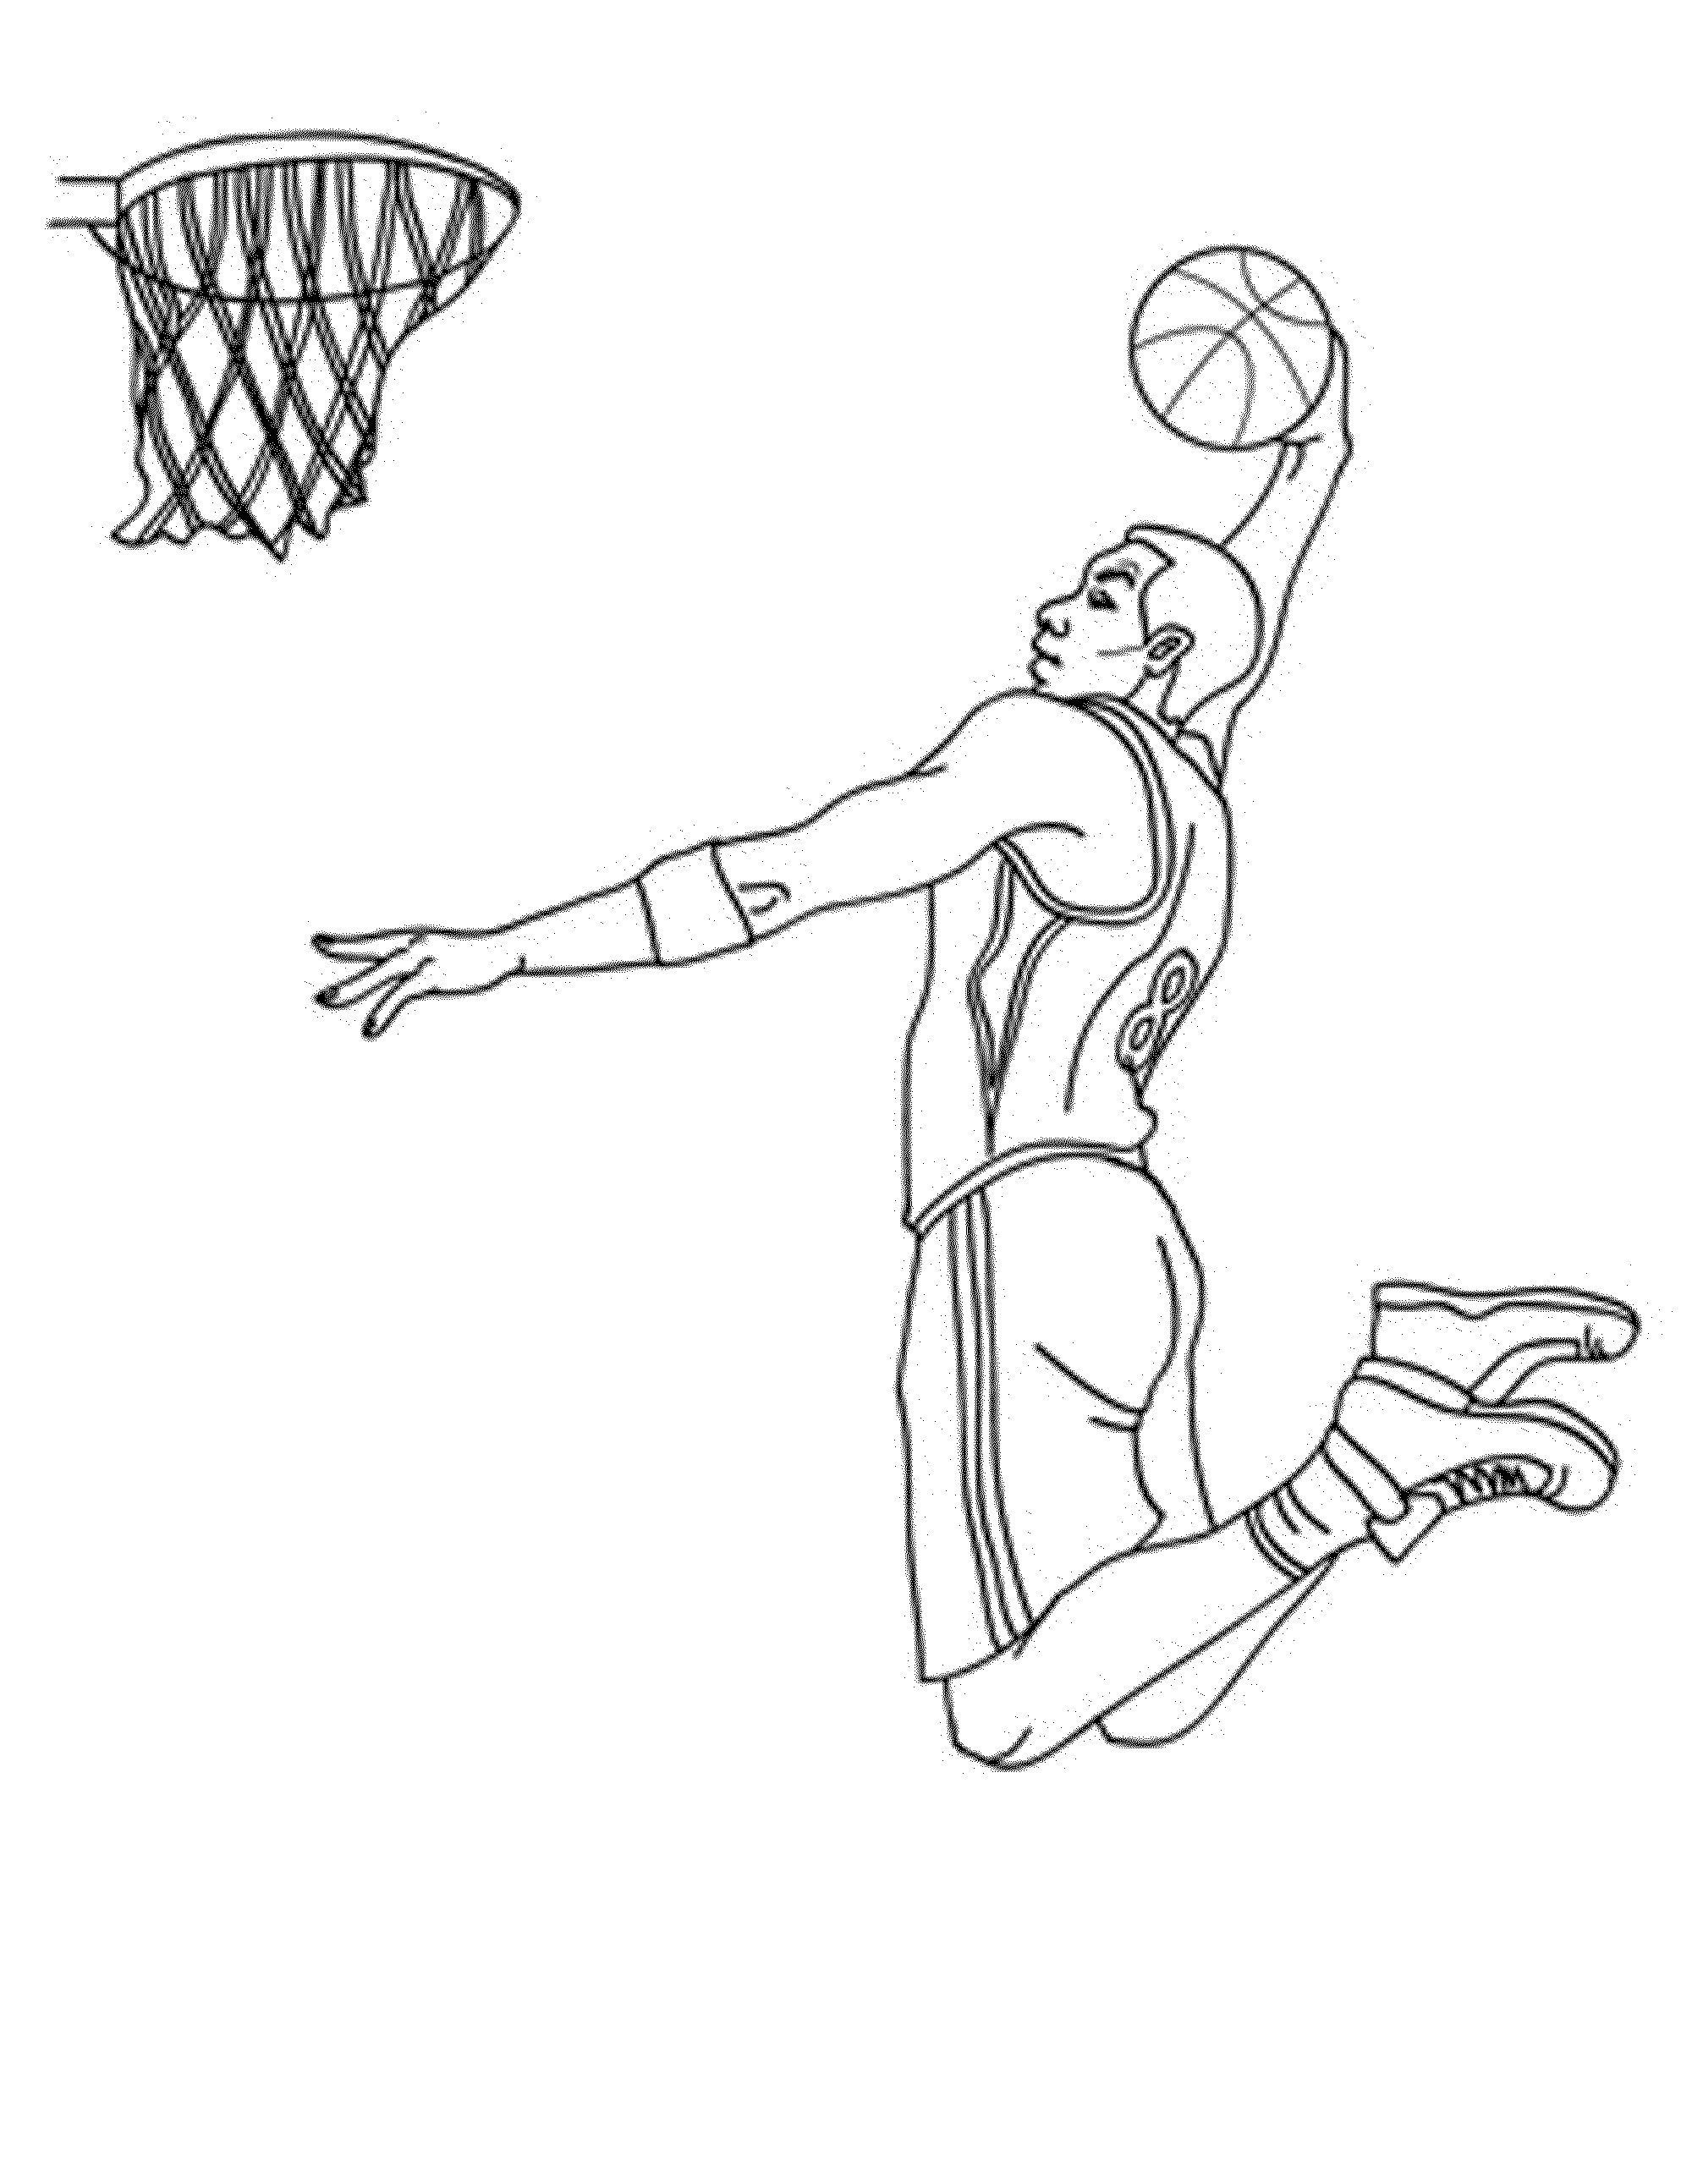 Lebron James Coloring Pages Lakers : lebron, james, coloring, pages, lakers, Window, Decorations